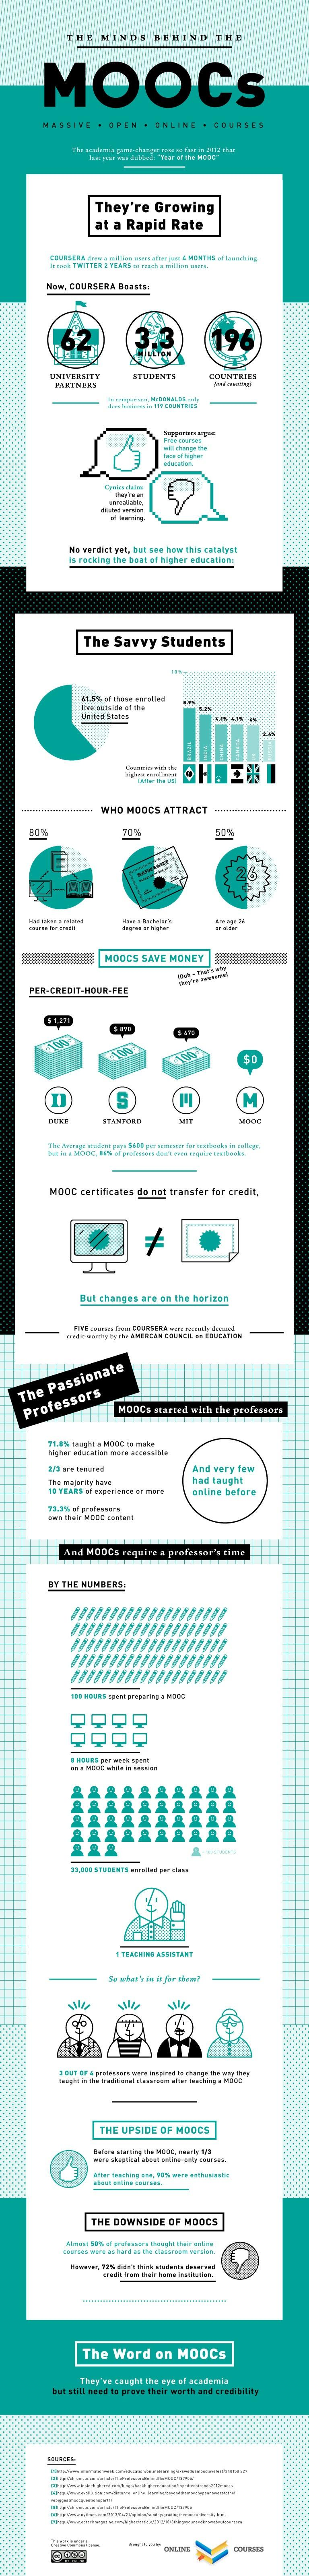 The Minds behind The MOOCs